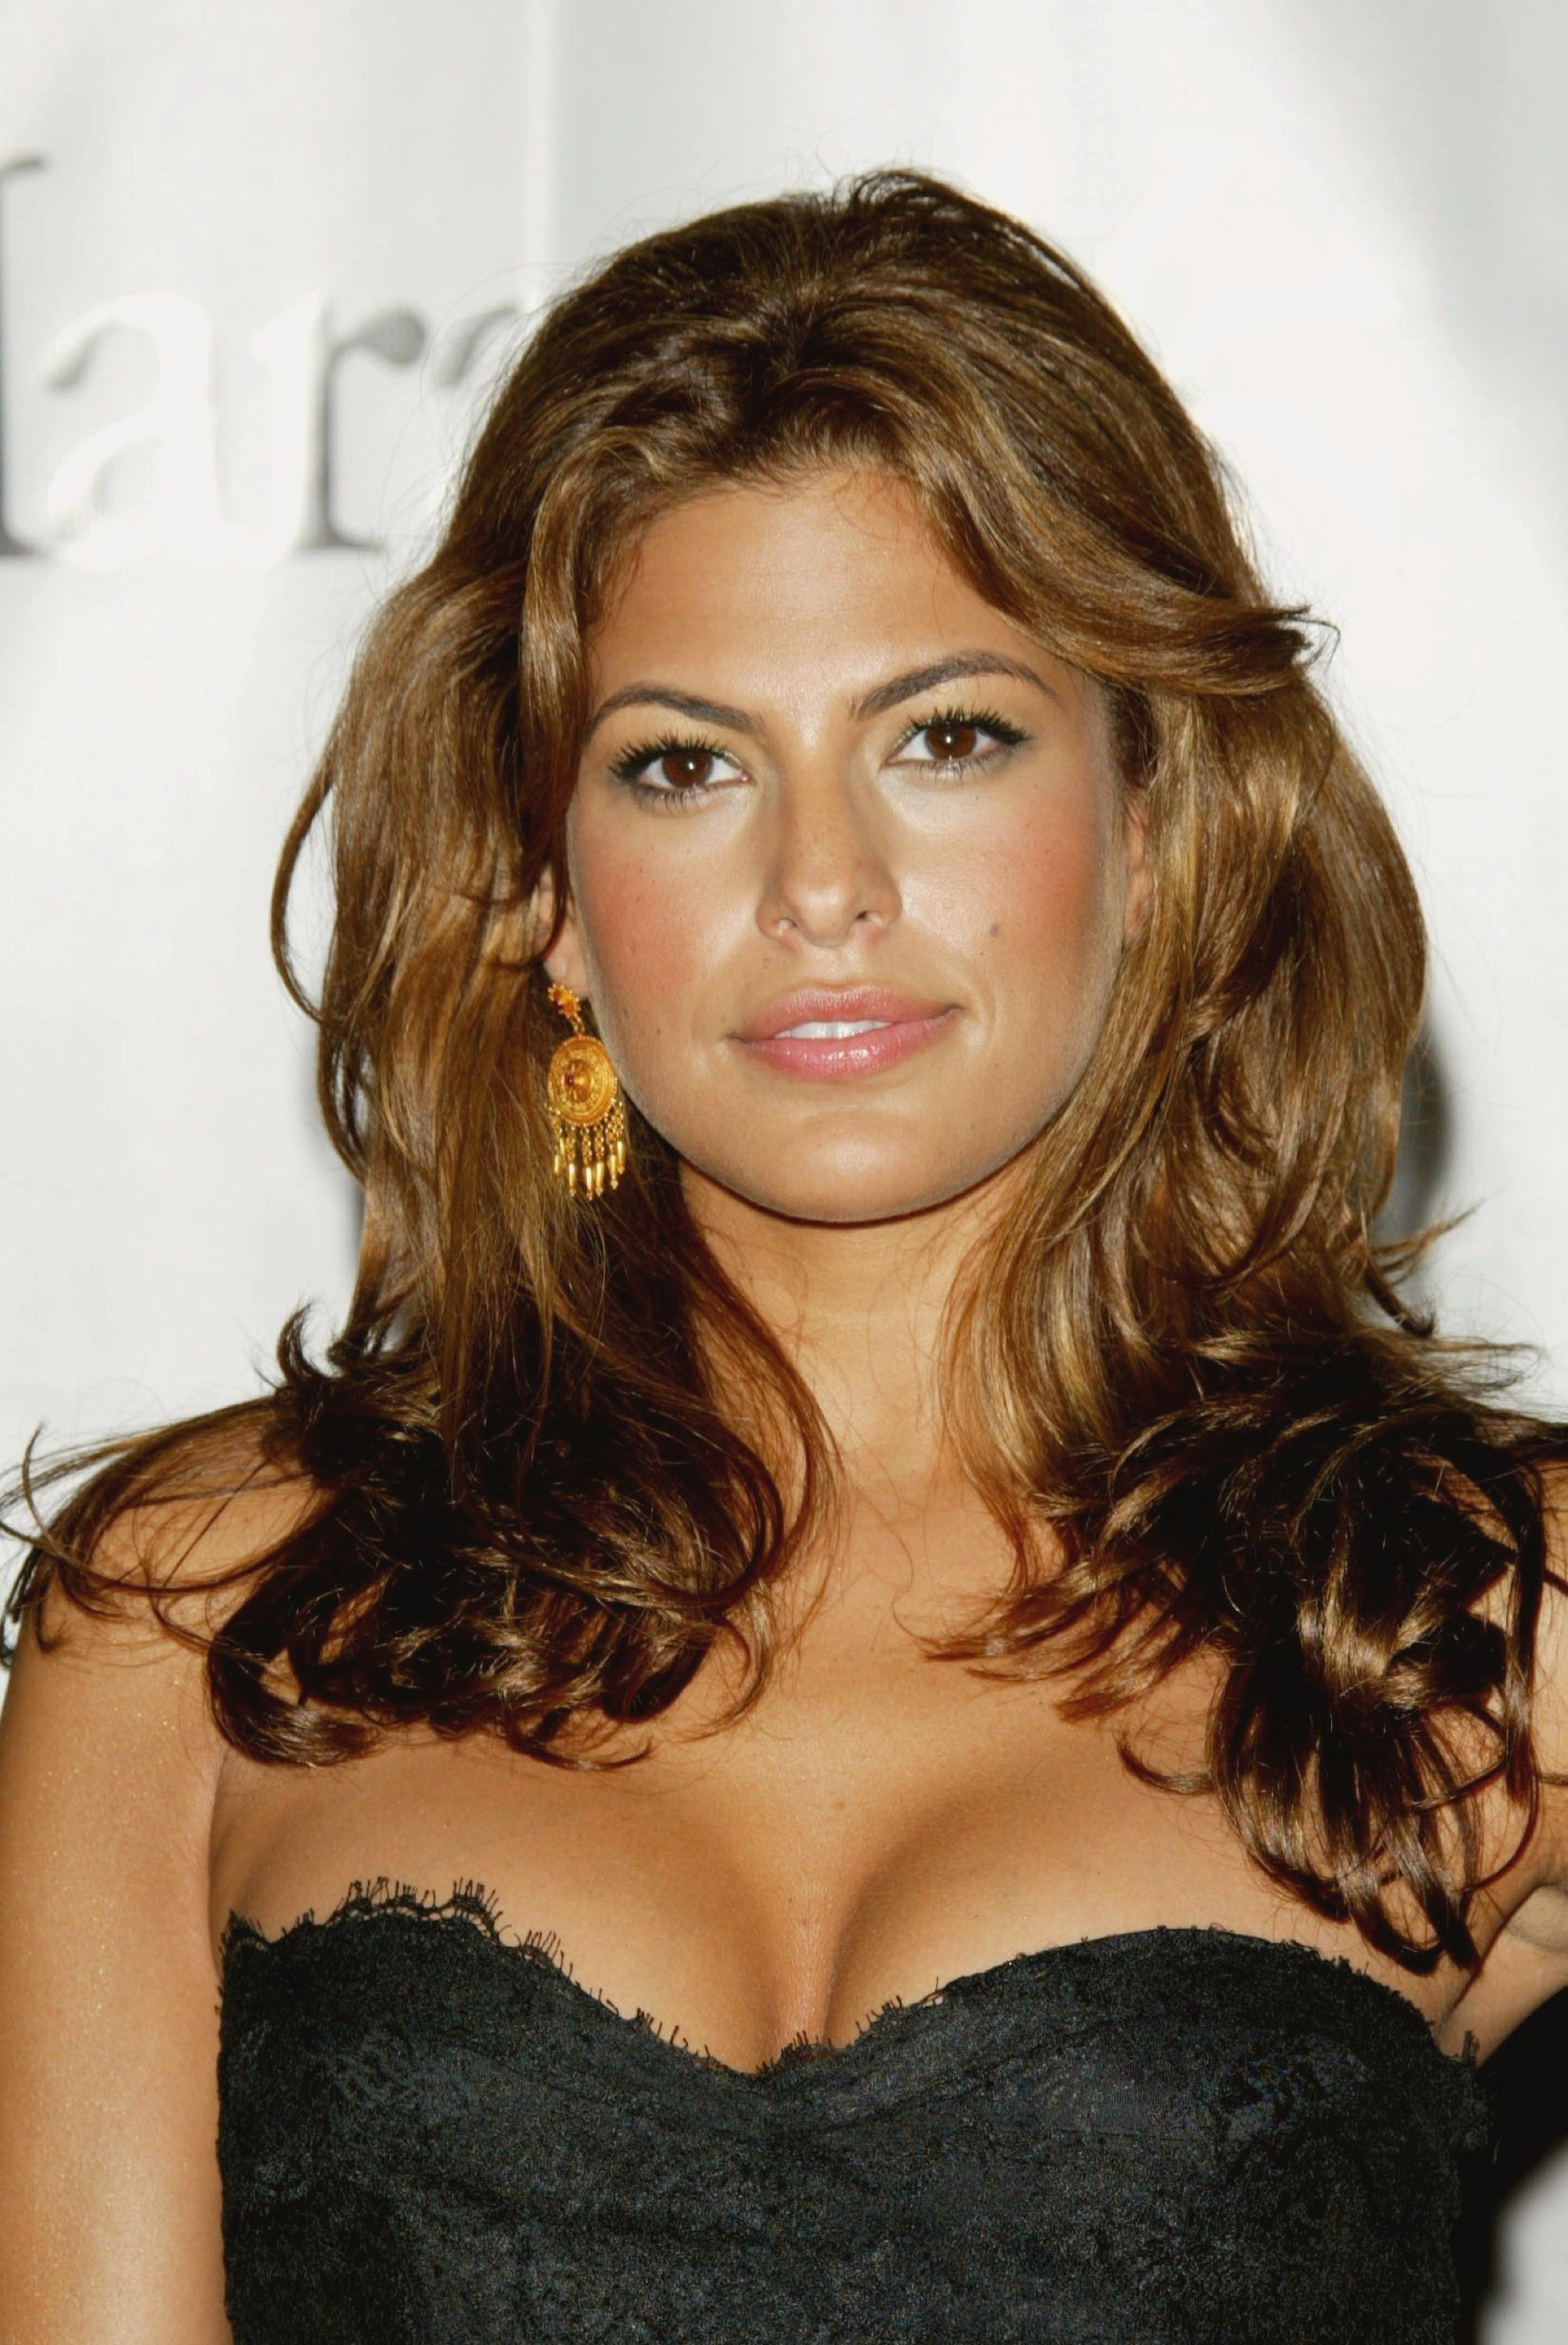 Eva Mendes Wallpapers Hd Download Hair Styles Eva Mendes Thick Hair Styles